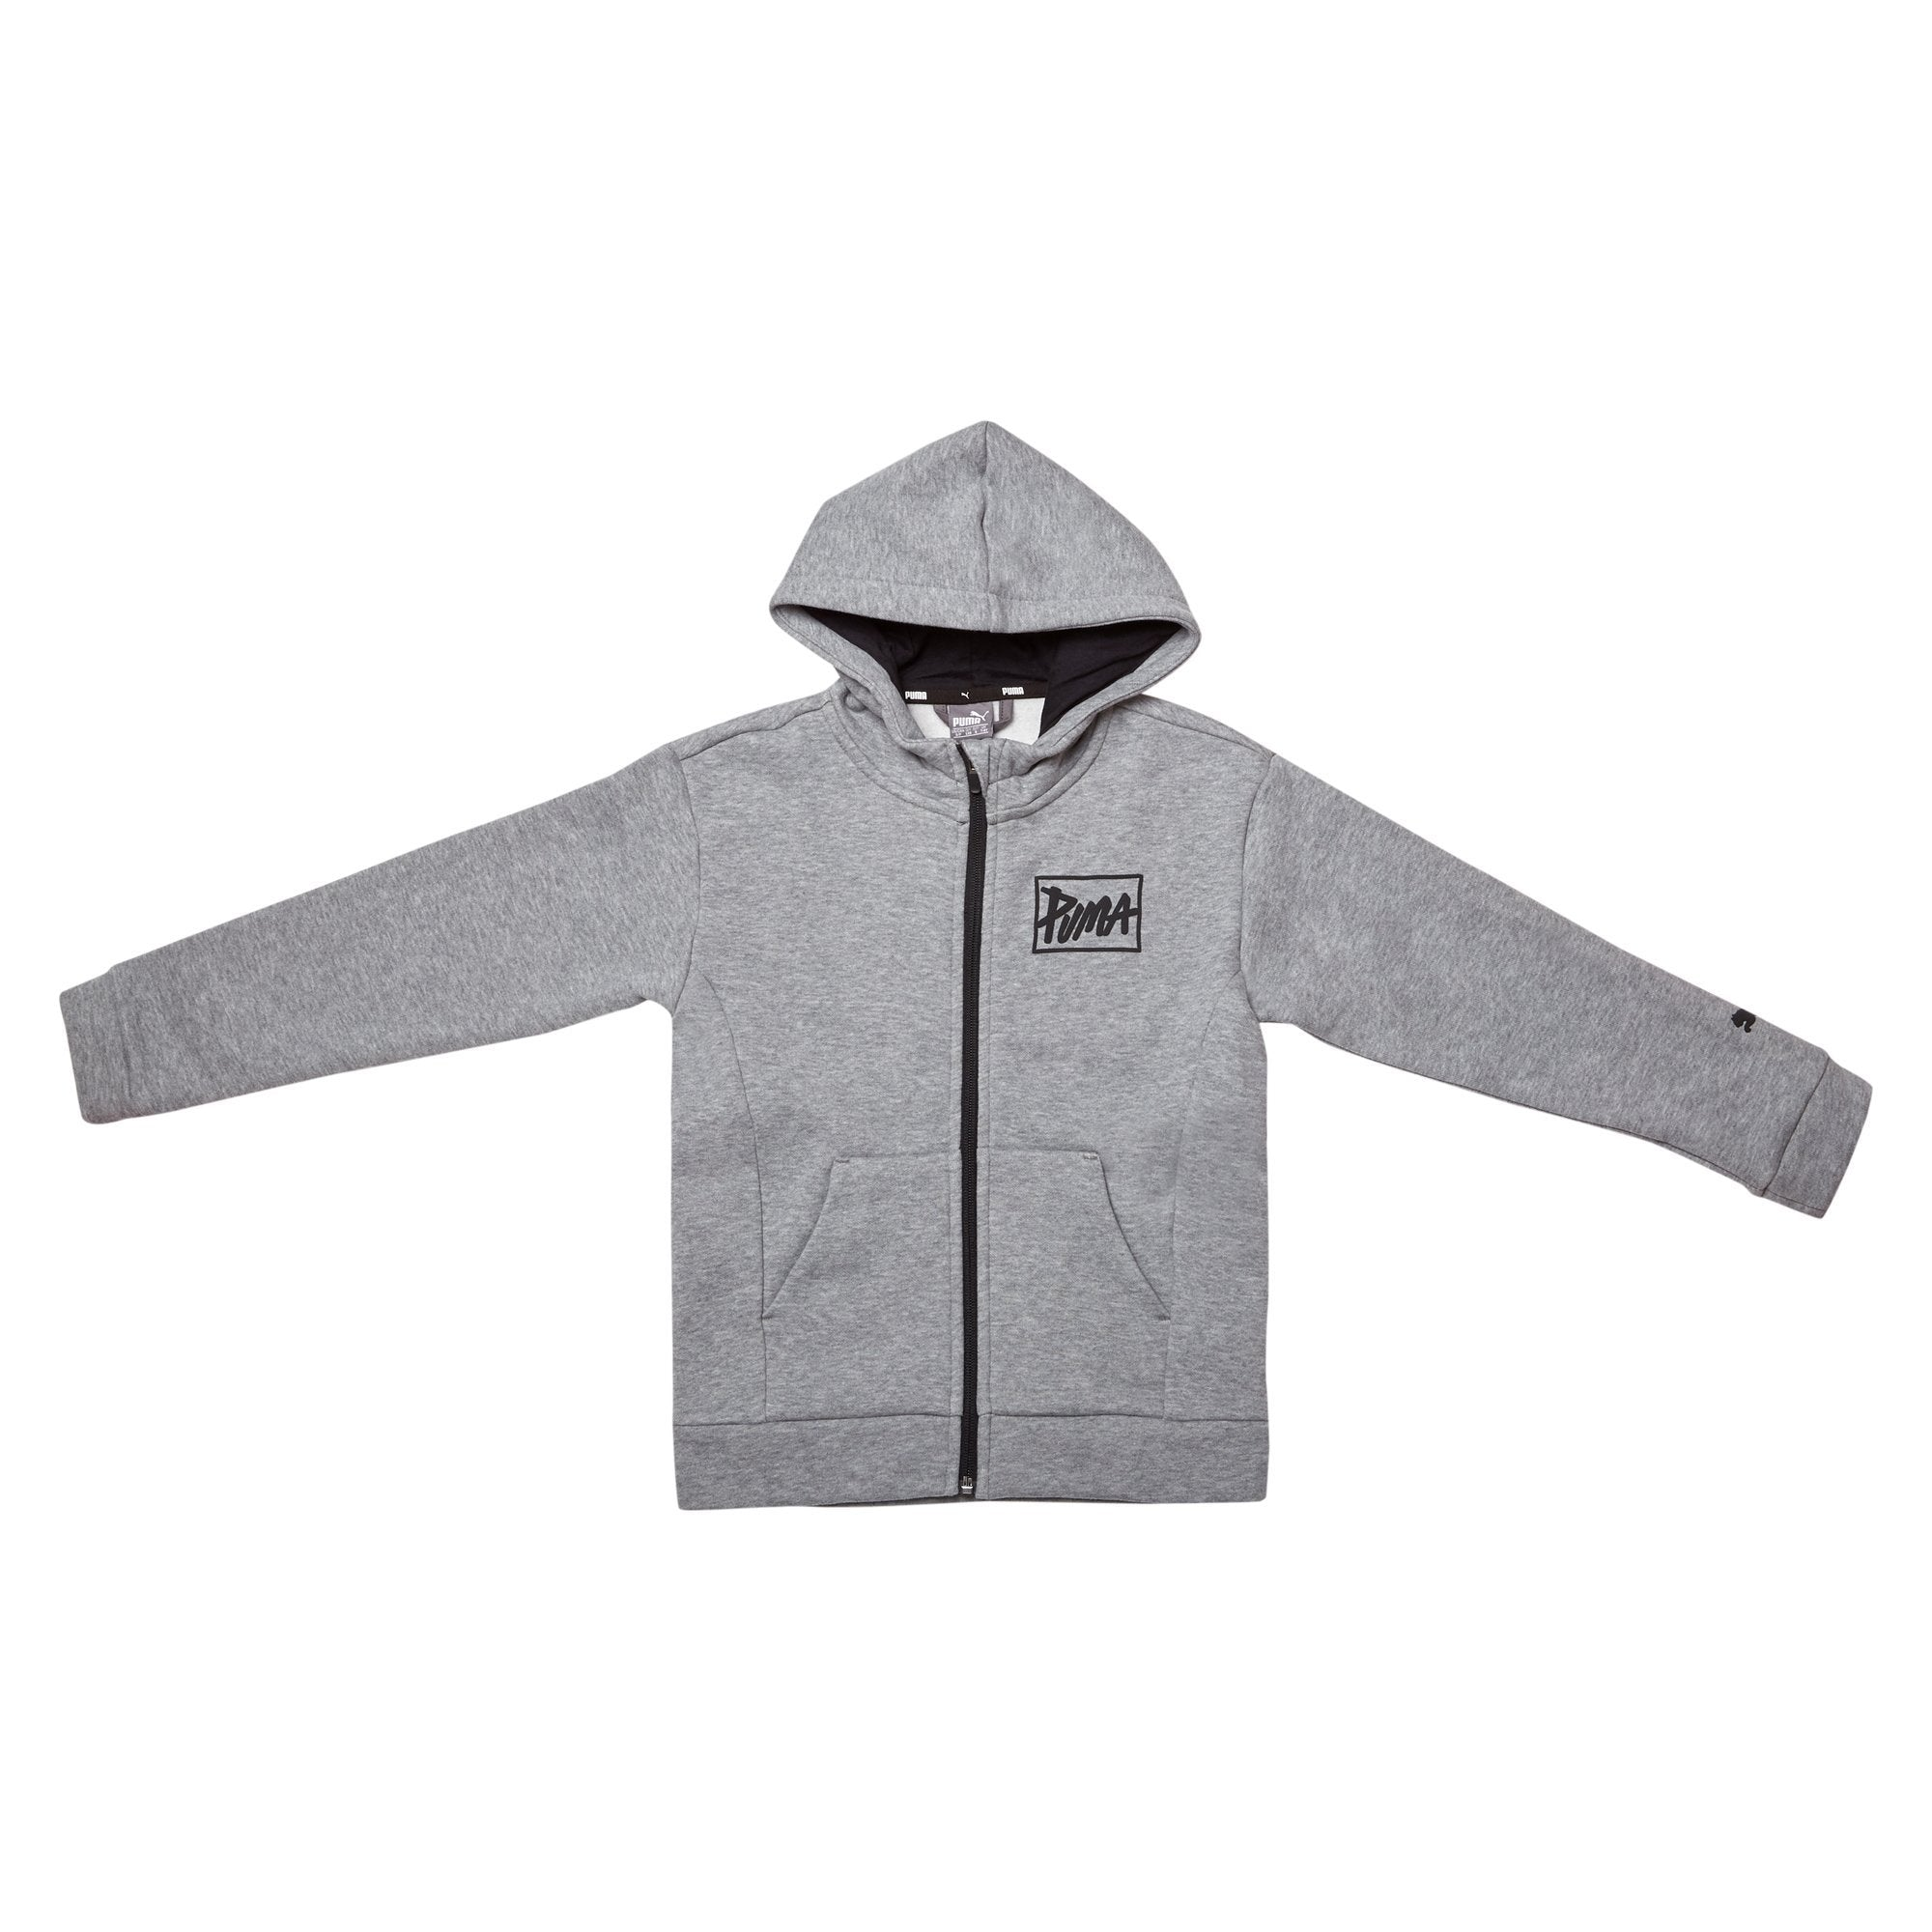 Puma Juniors Style Full Zip Hoodie - Medium Grey Heather Apparel Puma